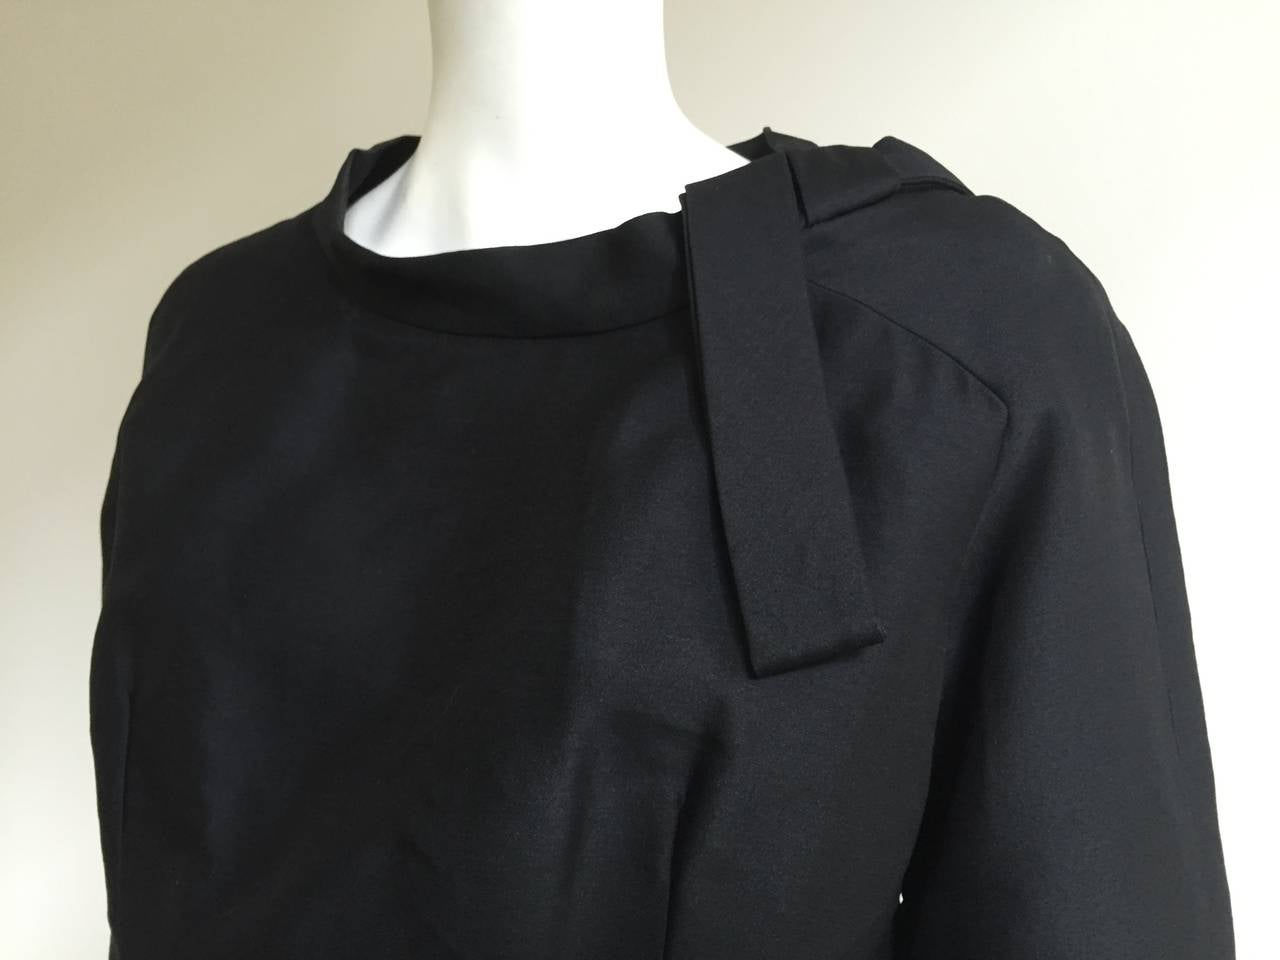 Dior 1950s Black Silk Evening Dress With Pockets Size 6. 7